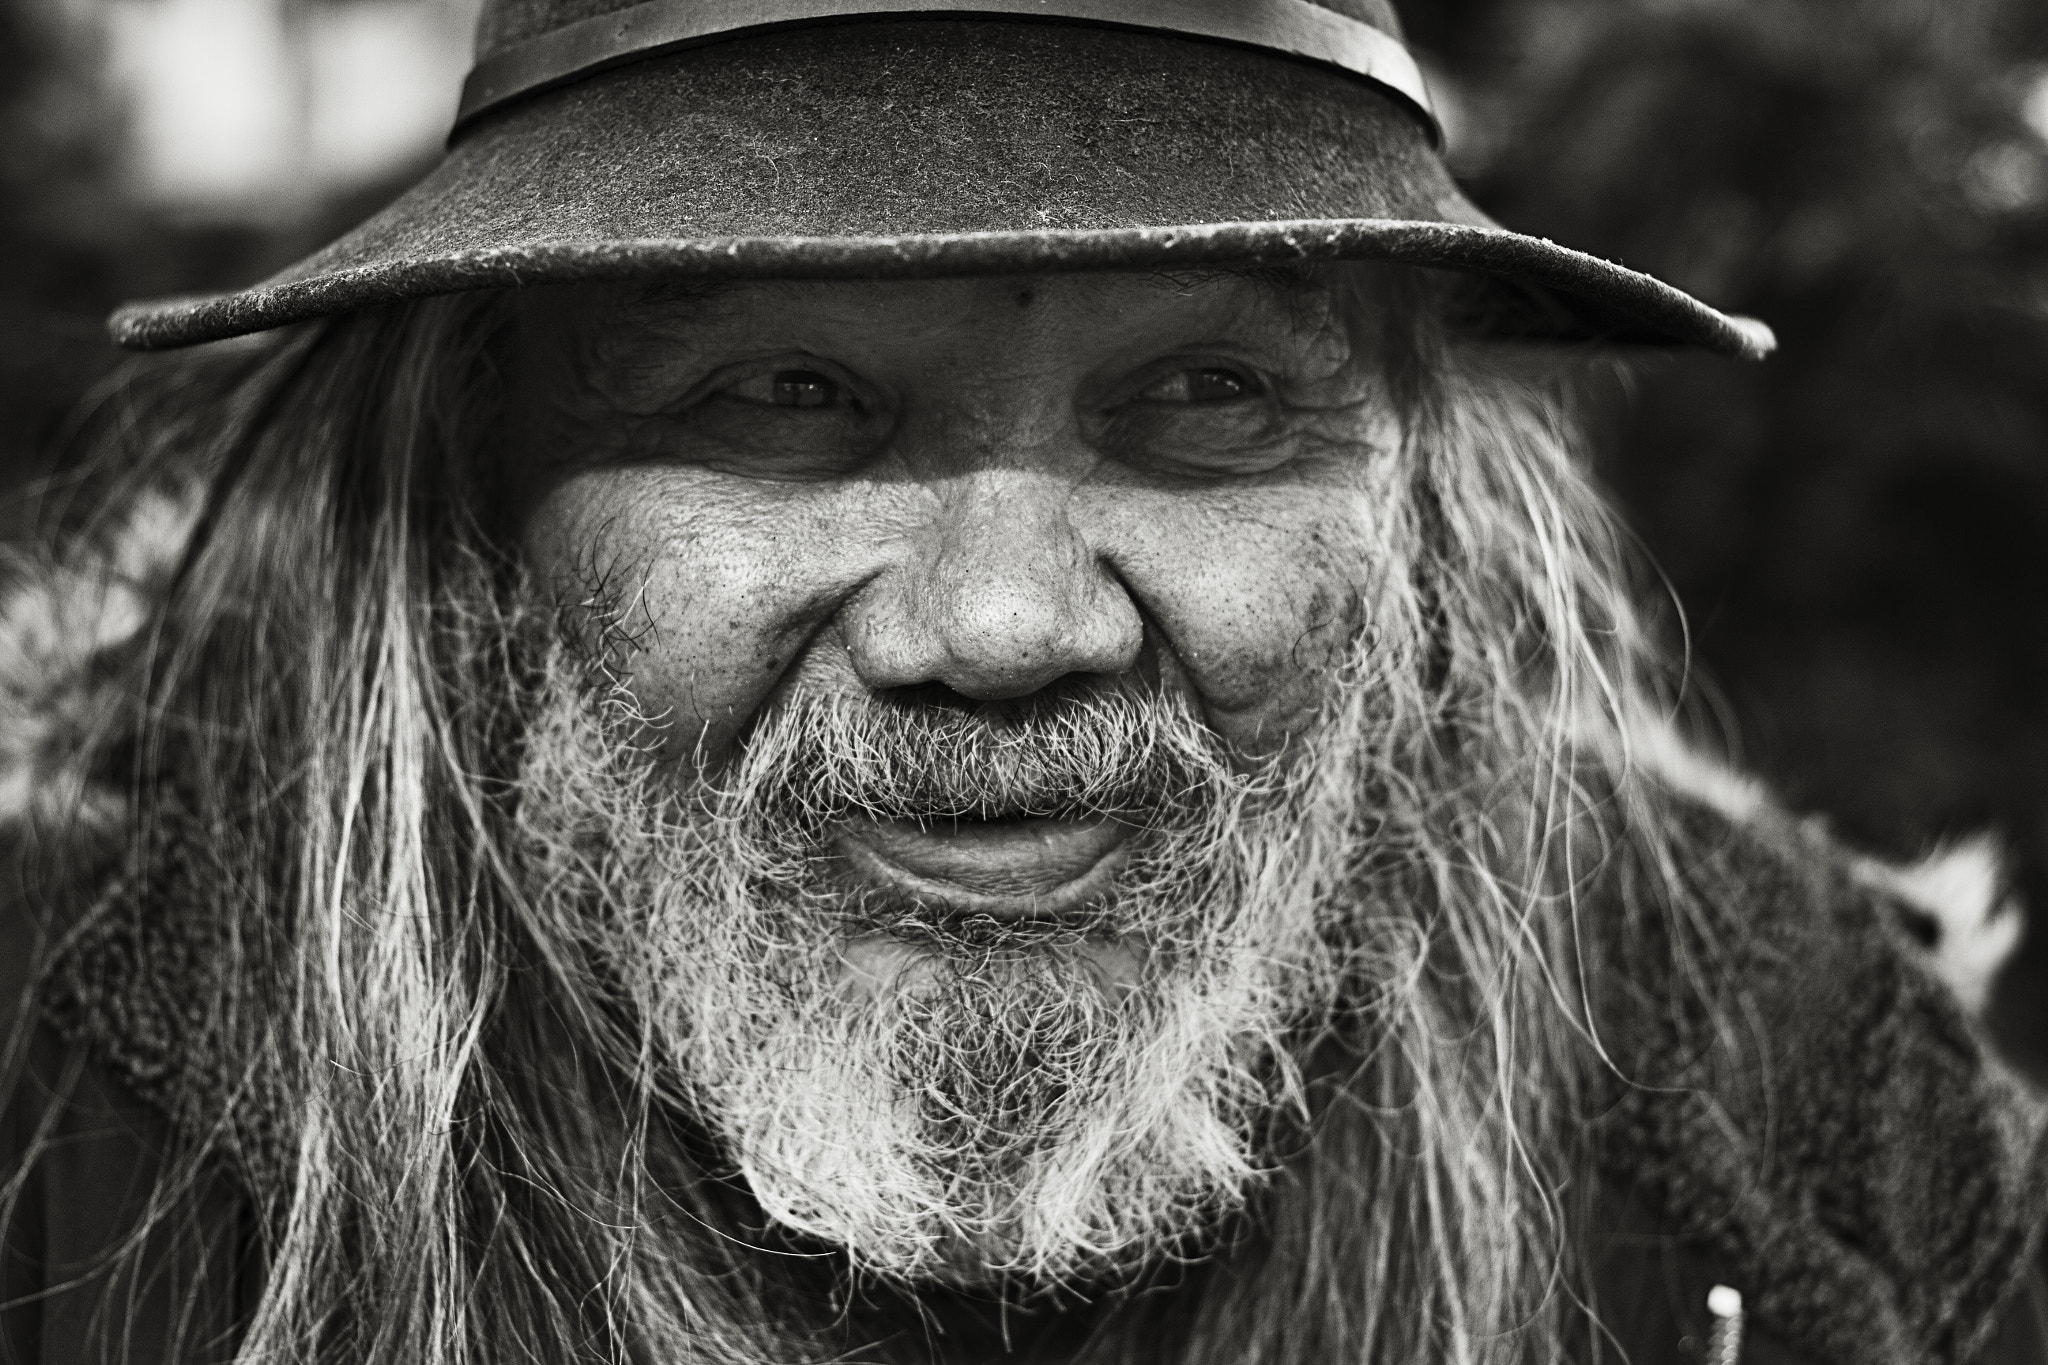 Photograph Unspoken Wisdom by Brett Perry on 500px